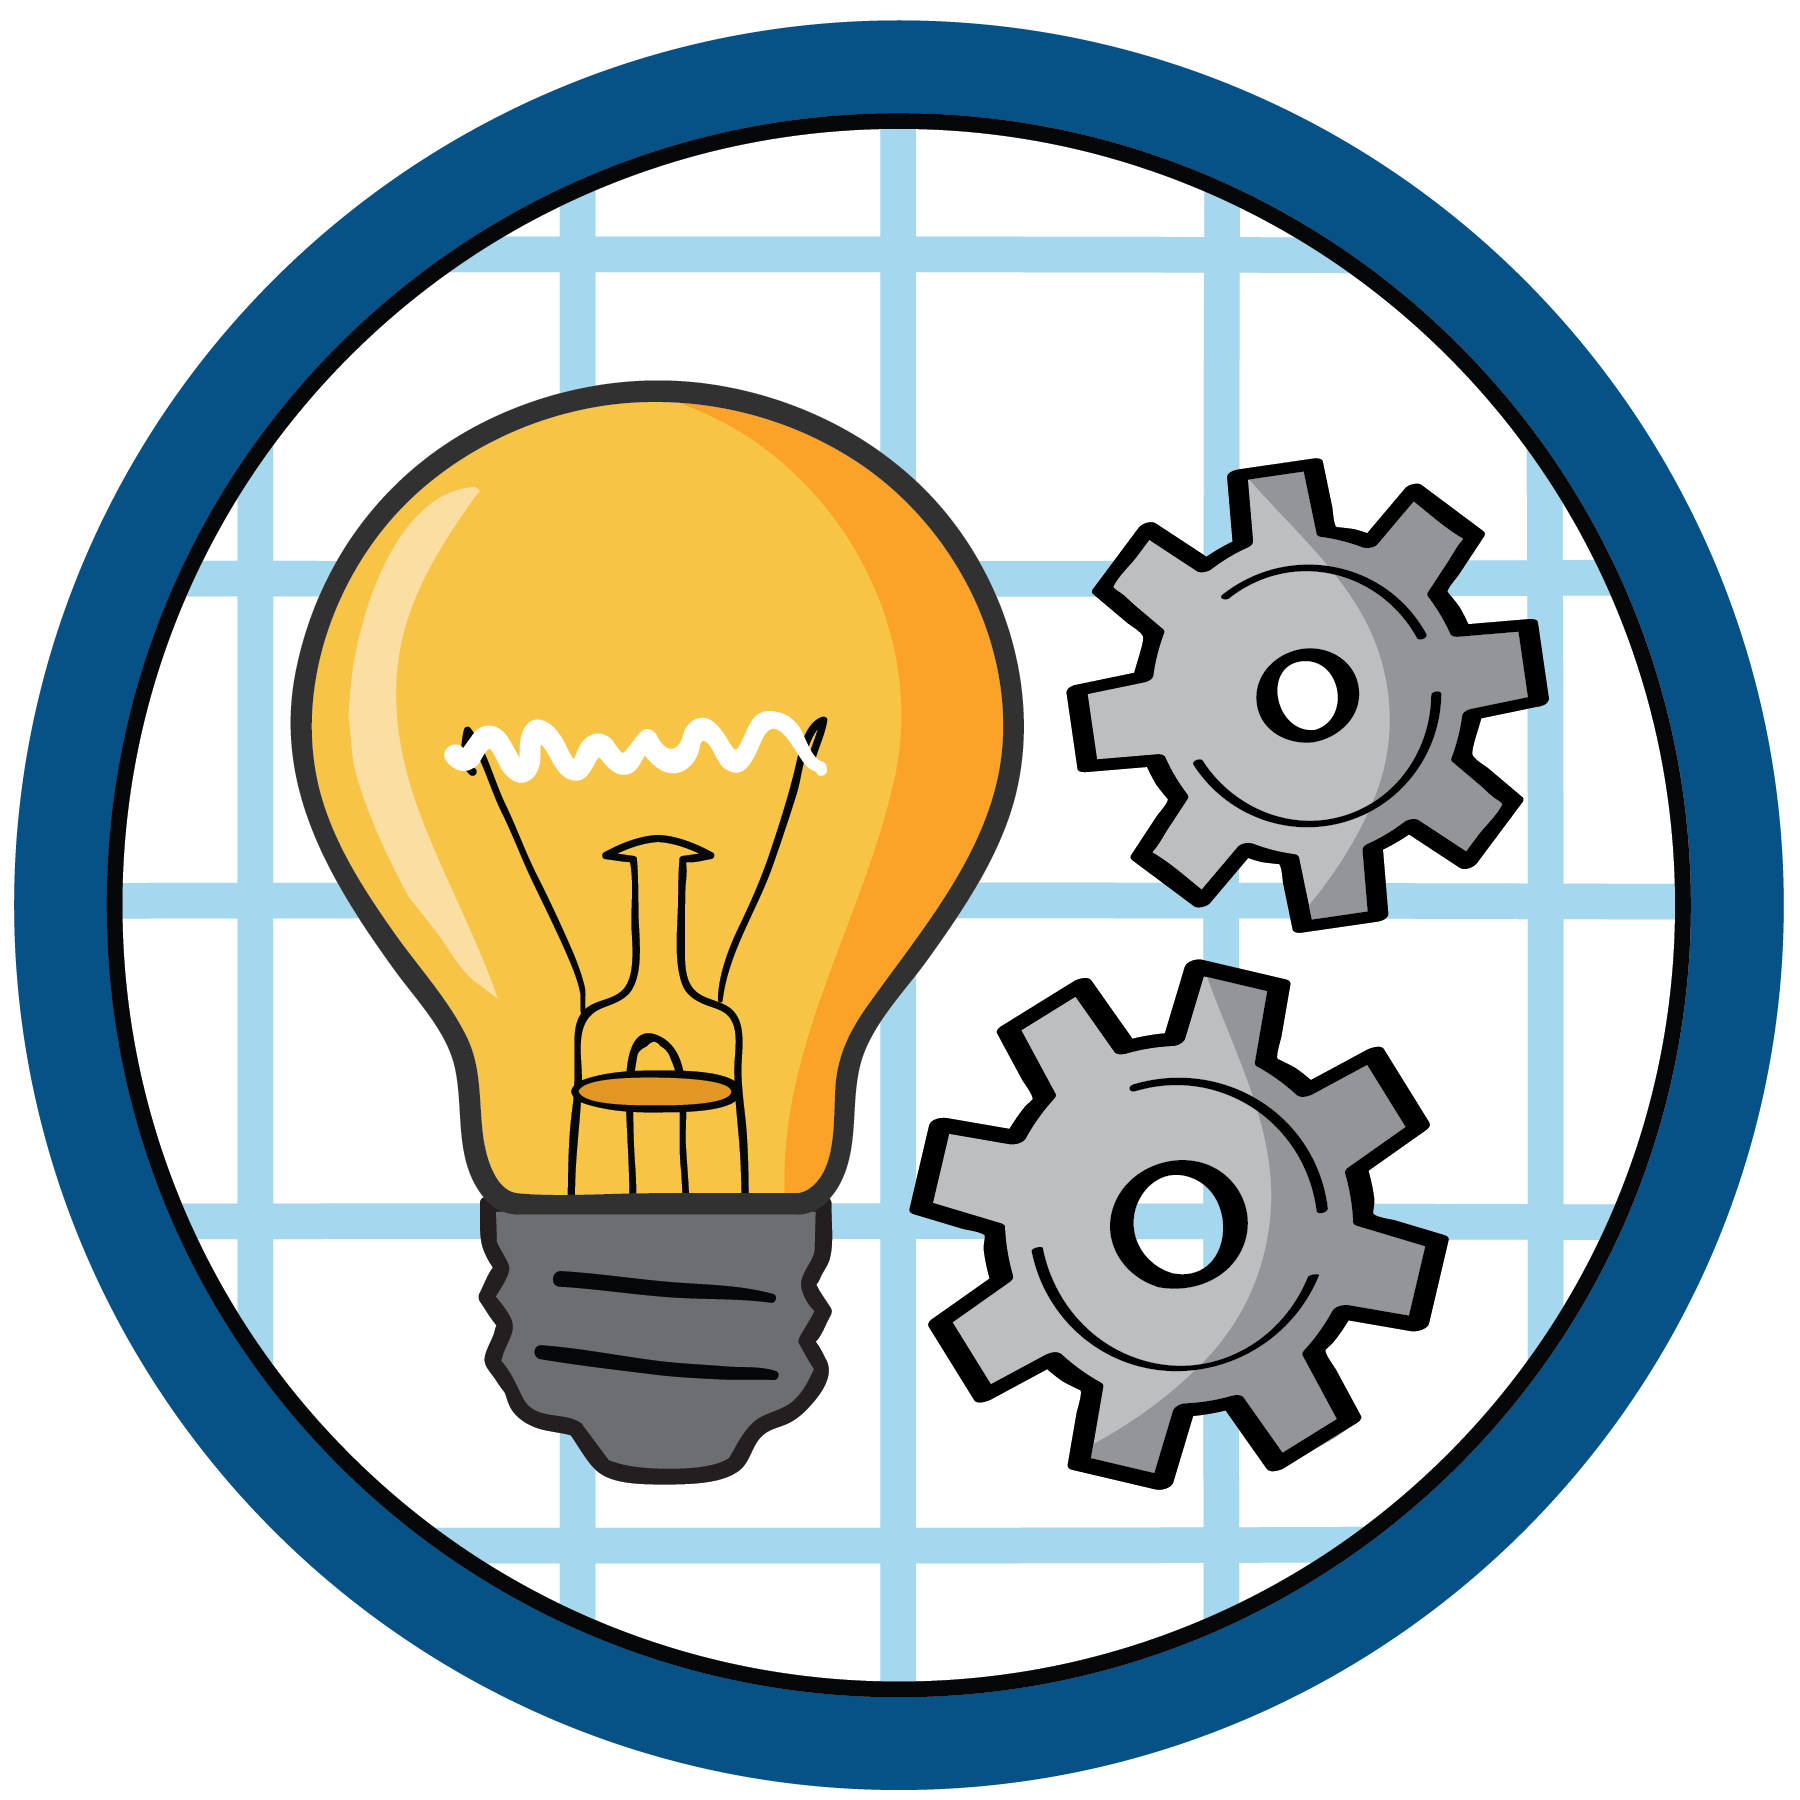 Idea clipart invention. Free online class